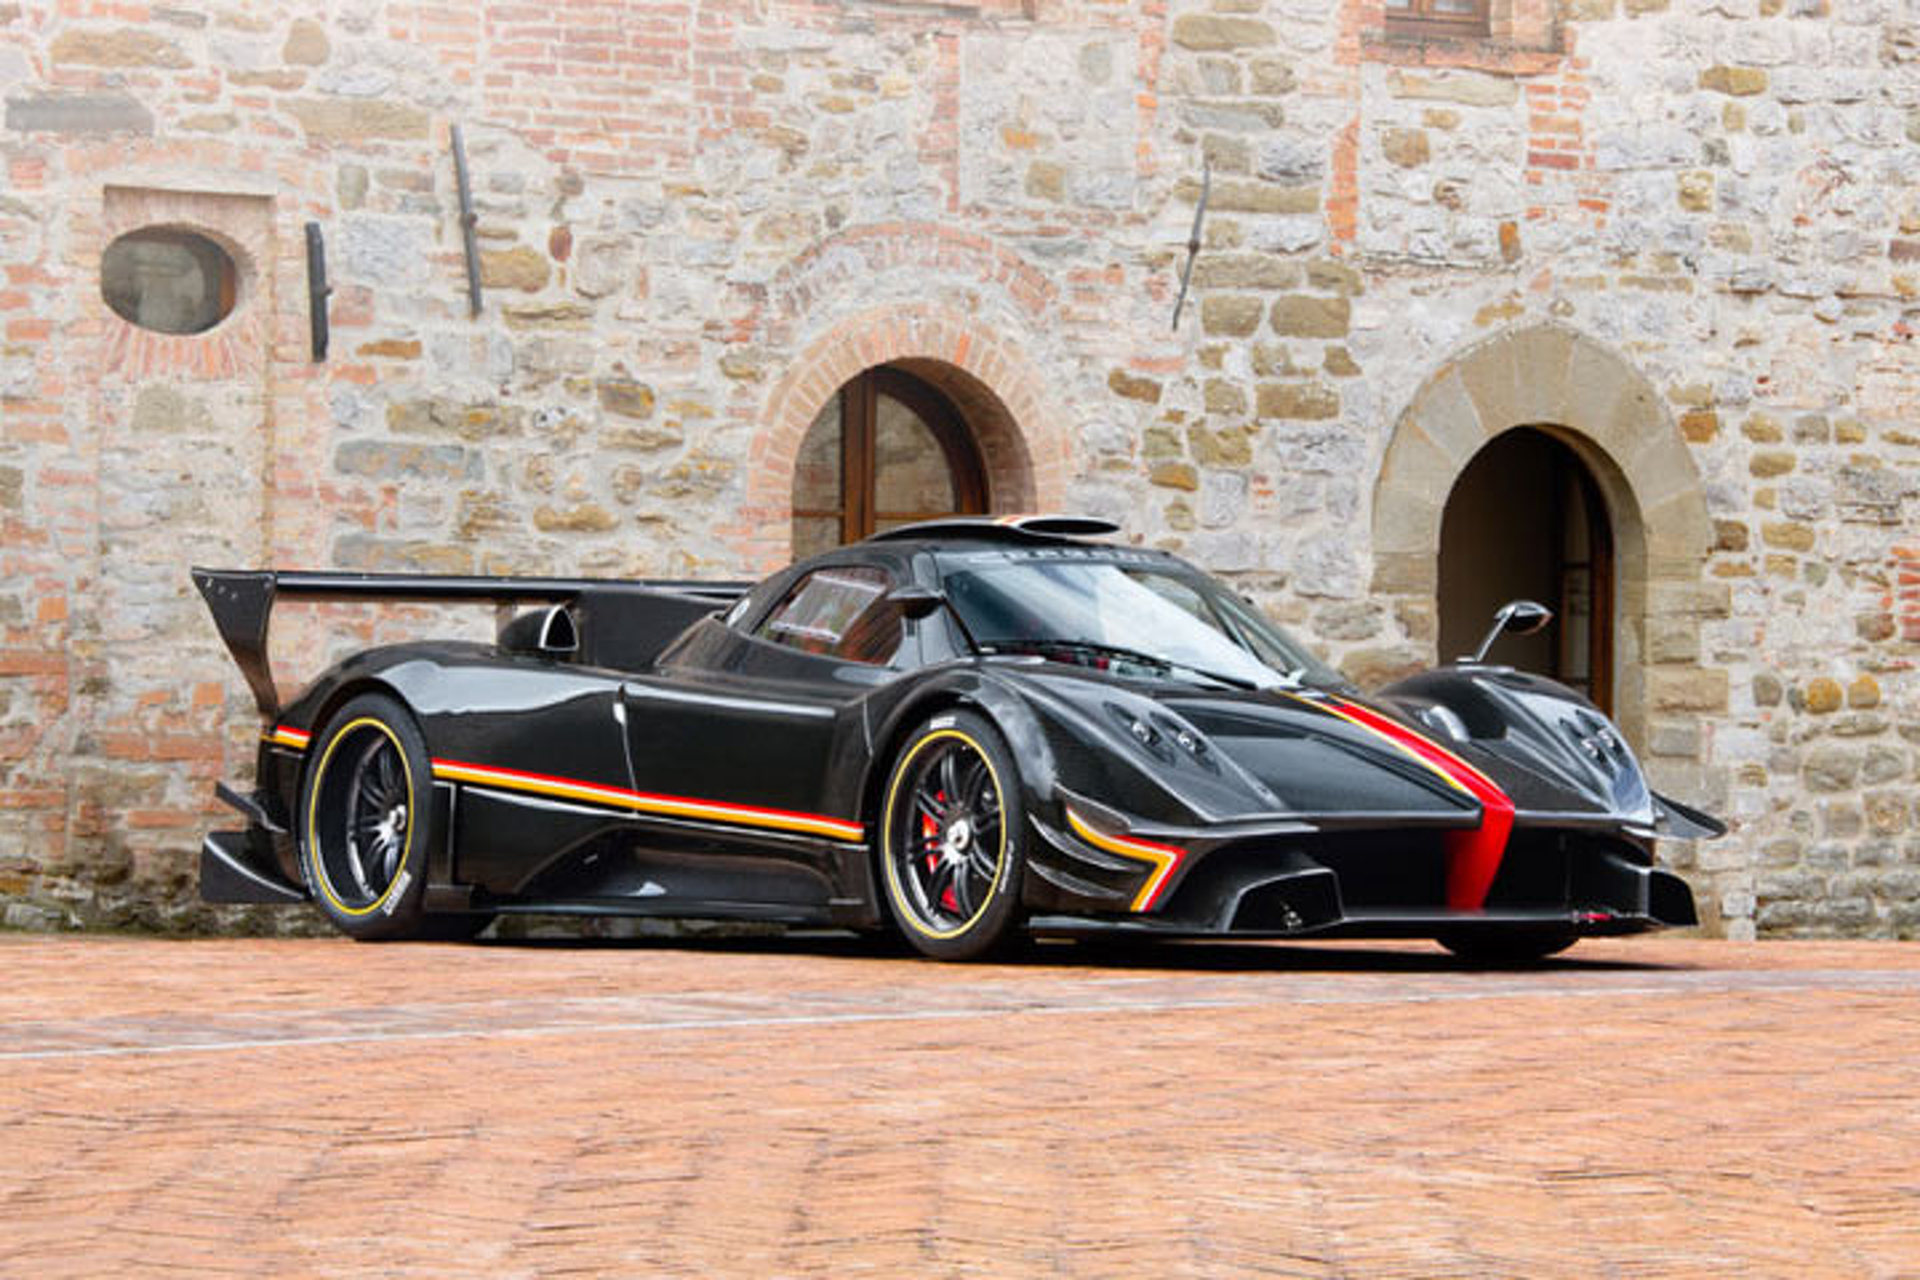 Pagani Zonda Revolucion Allegedly Sets New Nurburgring Record